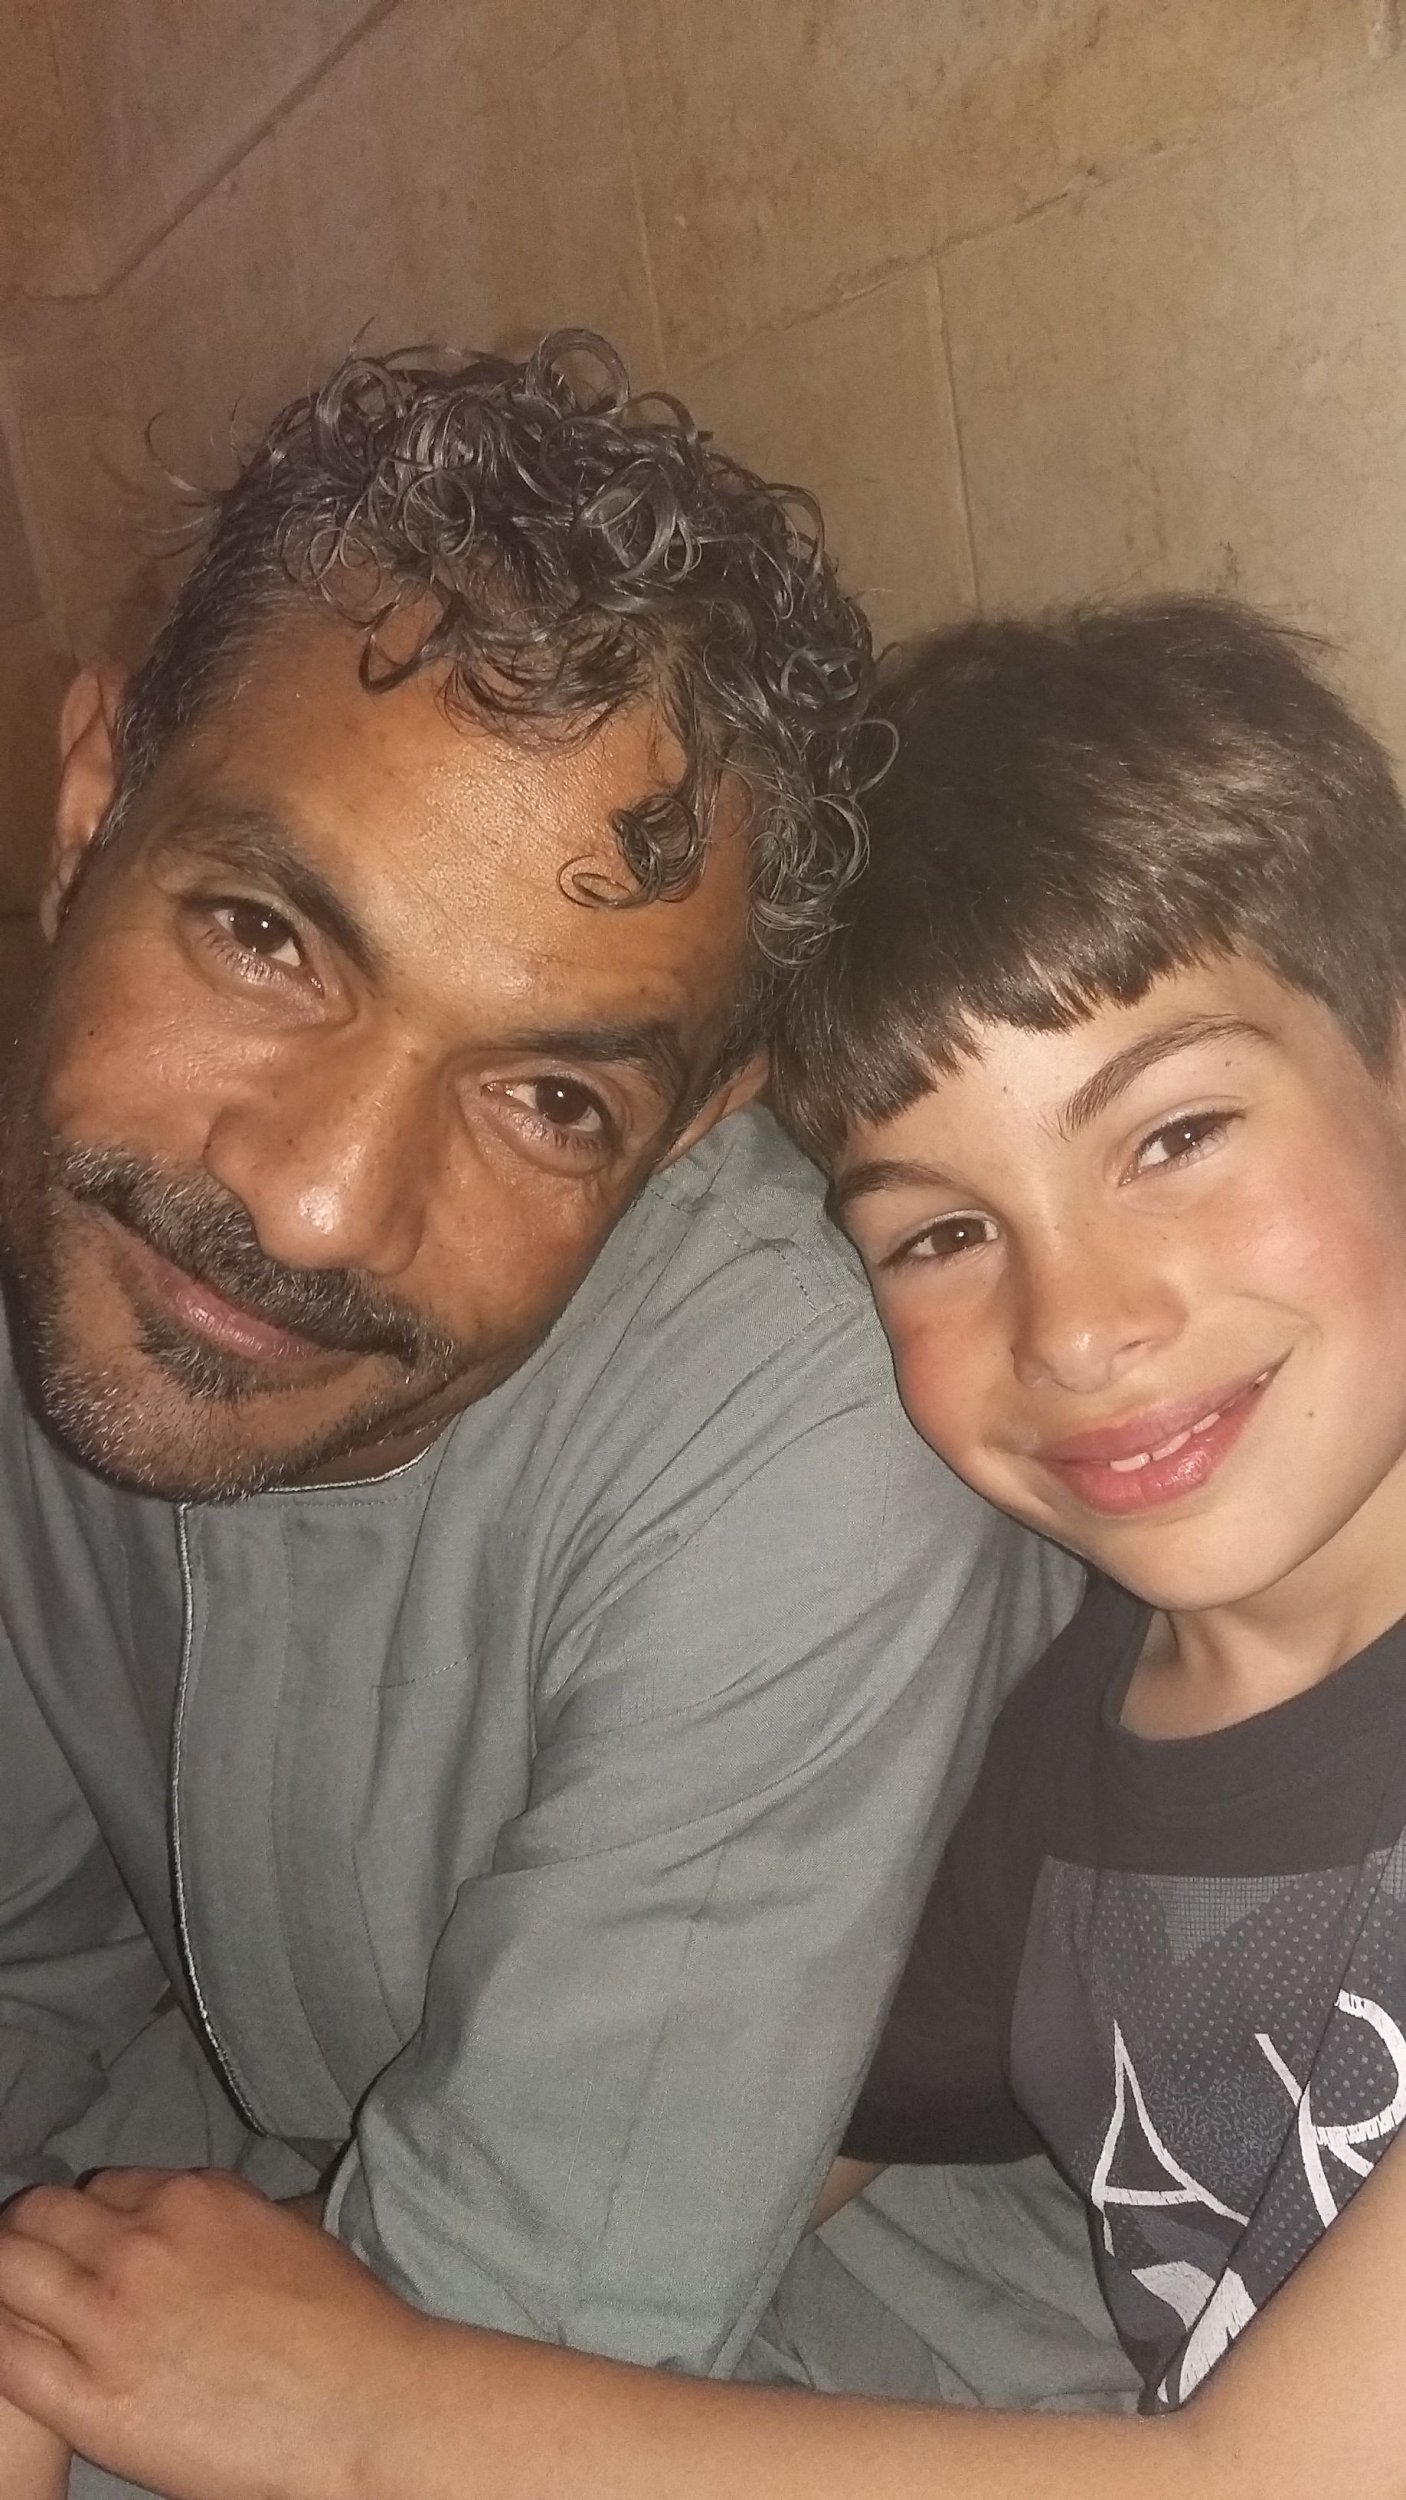 Solomon, 9, with his Eygptian father Ibrahim. See National News story NNSCHOOL; A mum has criticised two schools for fining her after she took her sons to Egypt during term time to visit their dying grandmother. Mandie Ibrahim filled in a permission form for her sons Solomon and Louis to take seven days out of school to make the emergency visit. Yet when she returned from the trip, she discovered that both St Leonardís CofE Primary School and Ark William Parker Academy had fined her a combined total of £120. Mandie, of Hastings, East Sussex, said: ìAll we did while we were over there was go in and out of familyís home, visiting family.